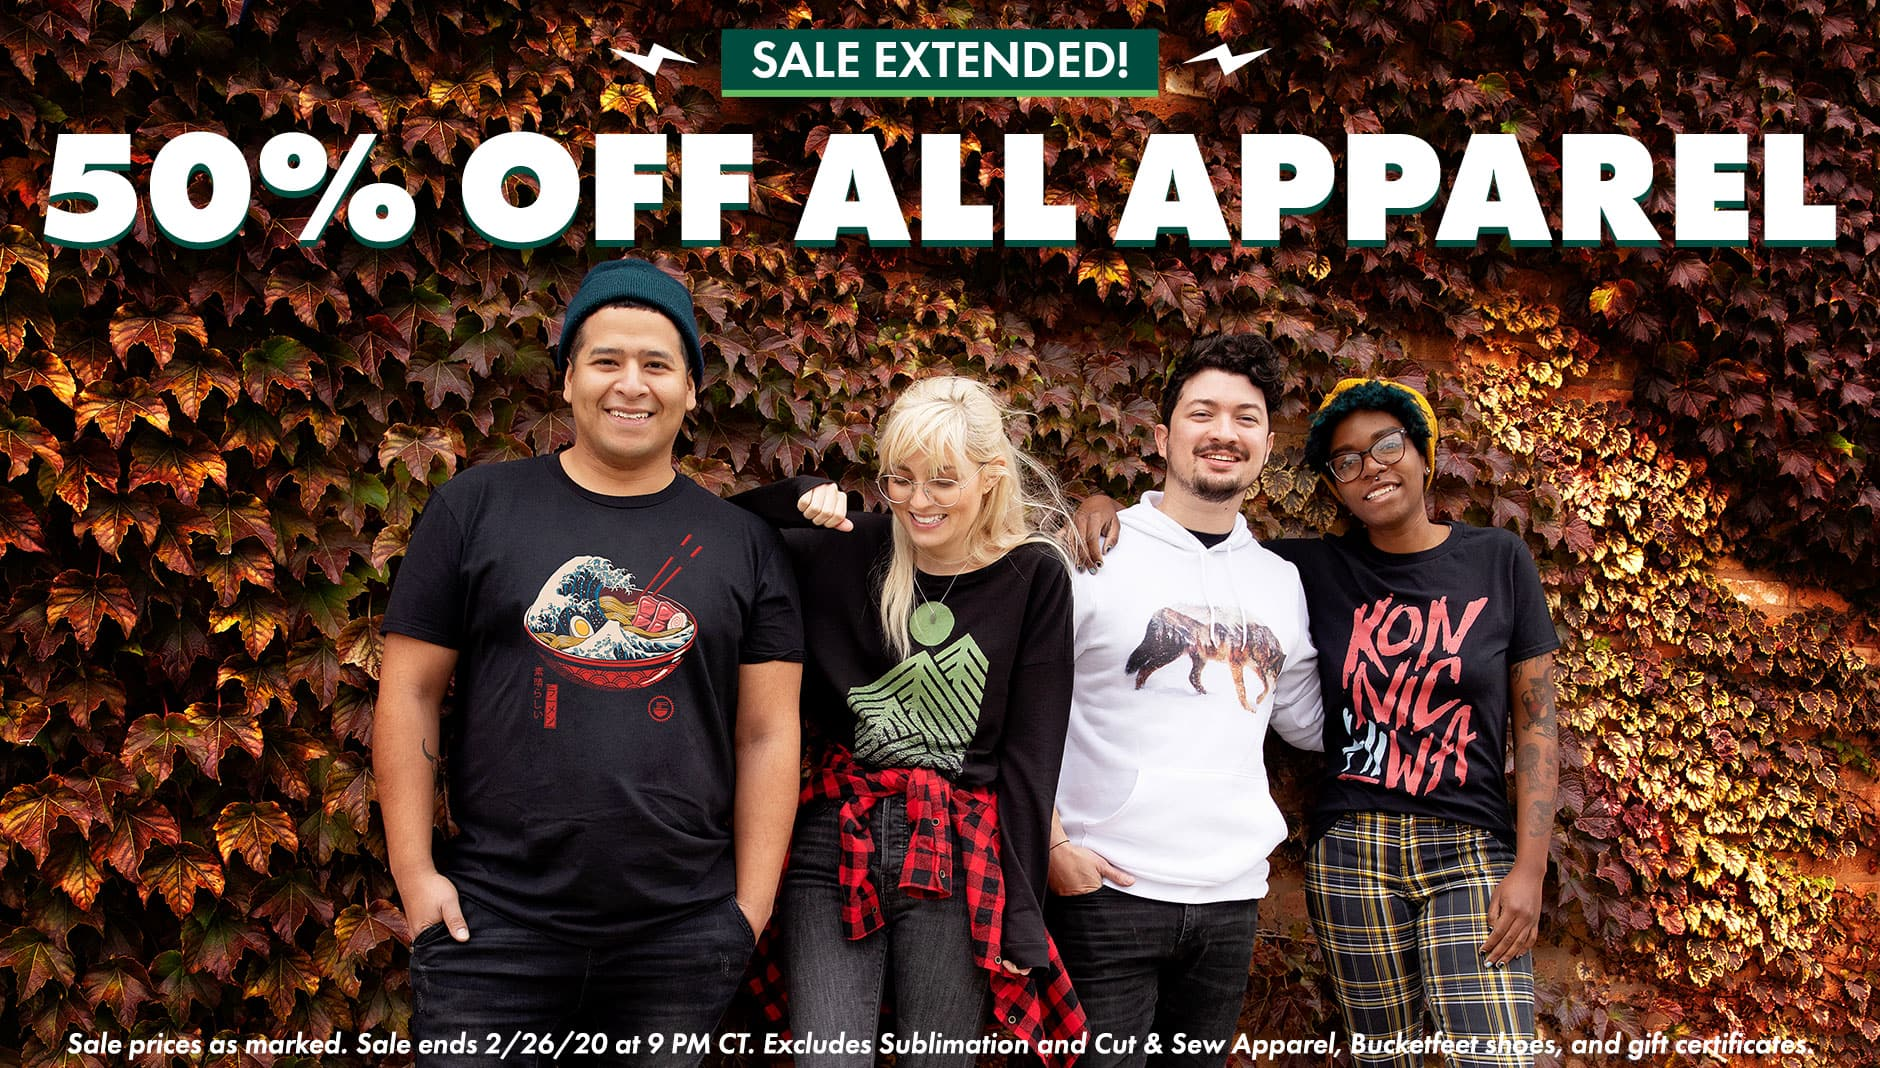 Sale Extended! Shop 50% off ALL Apparel on Threadless